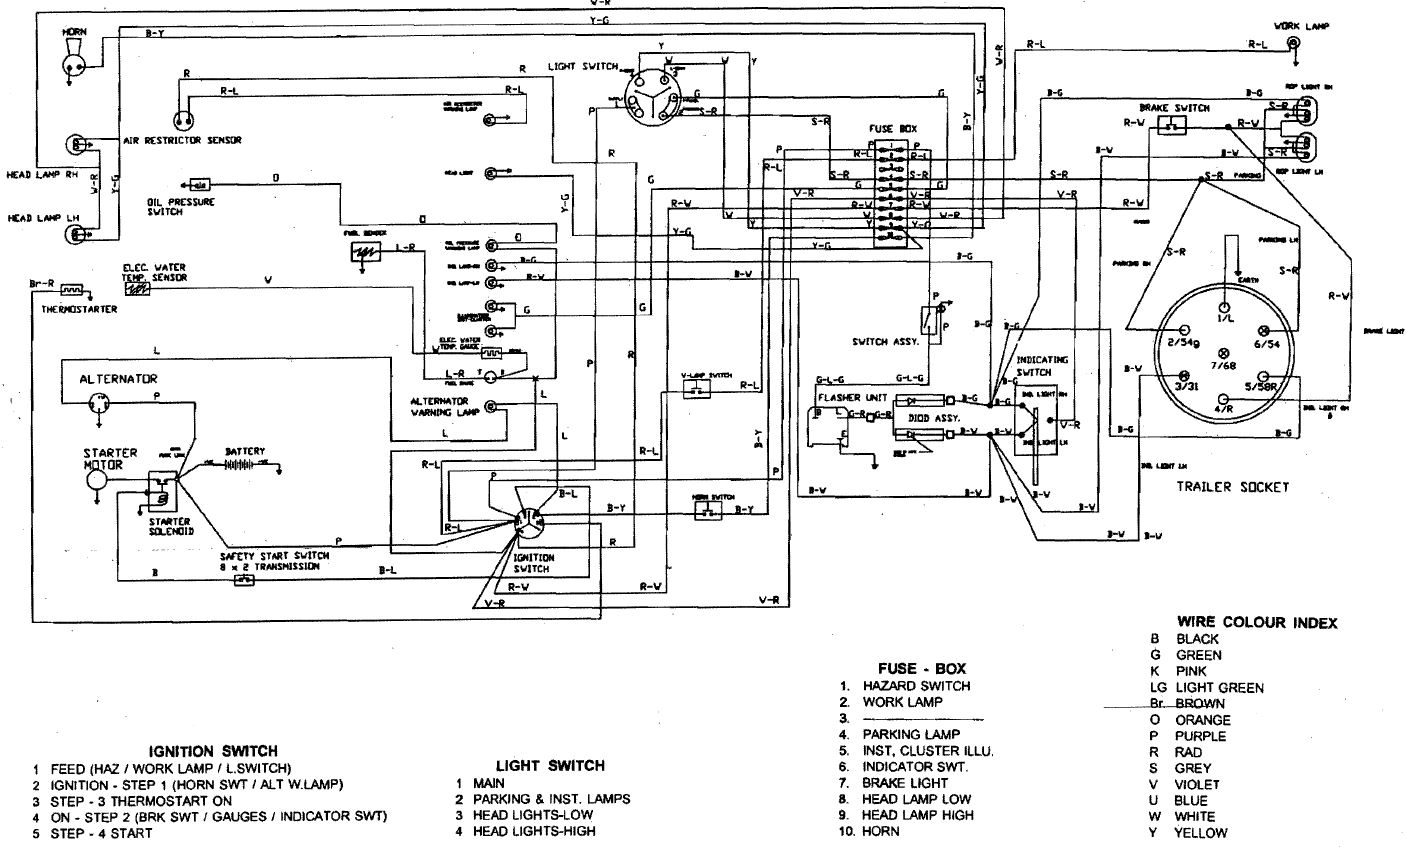 Imt 539 Wiring Diagram